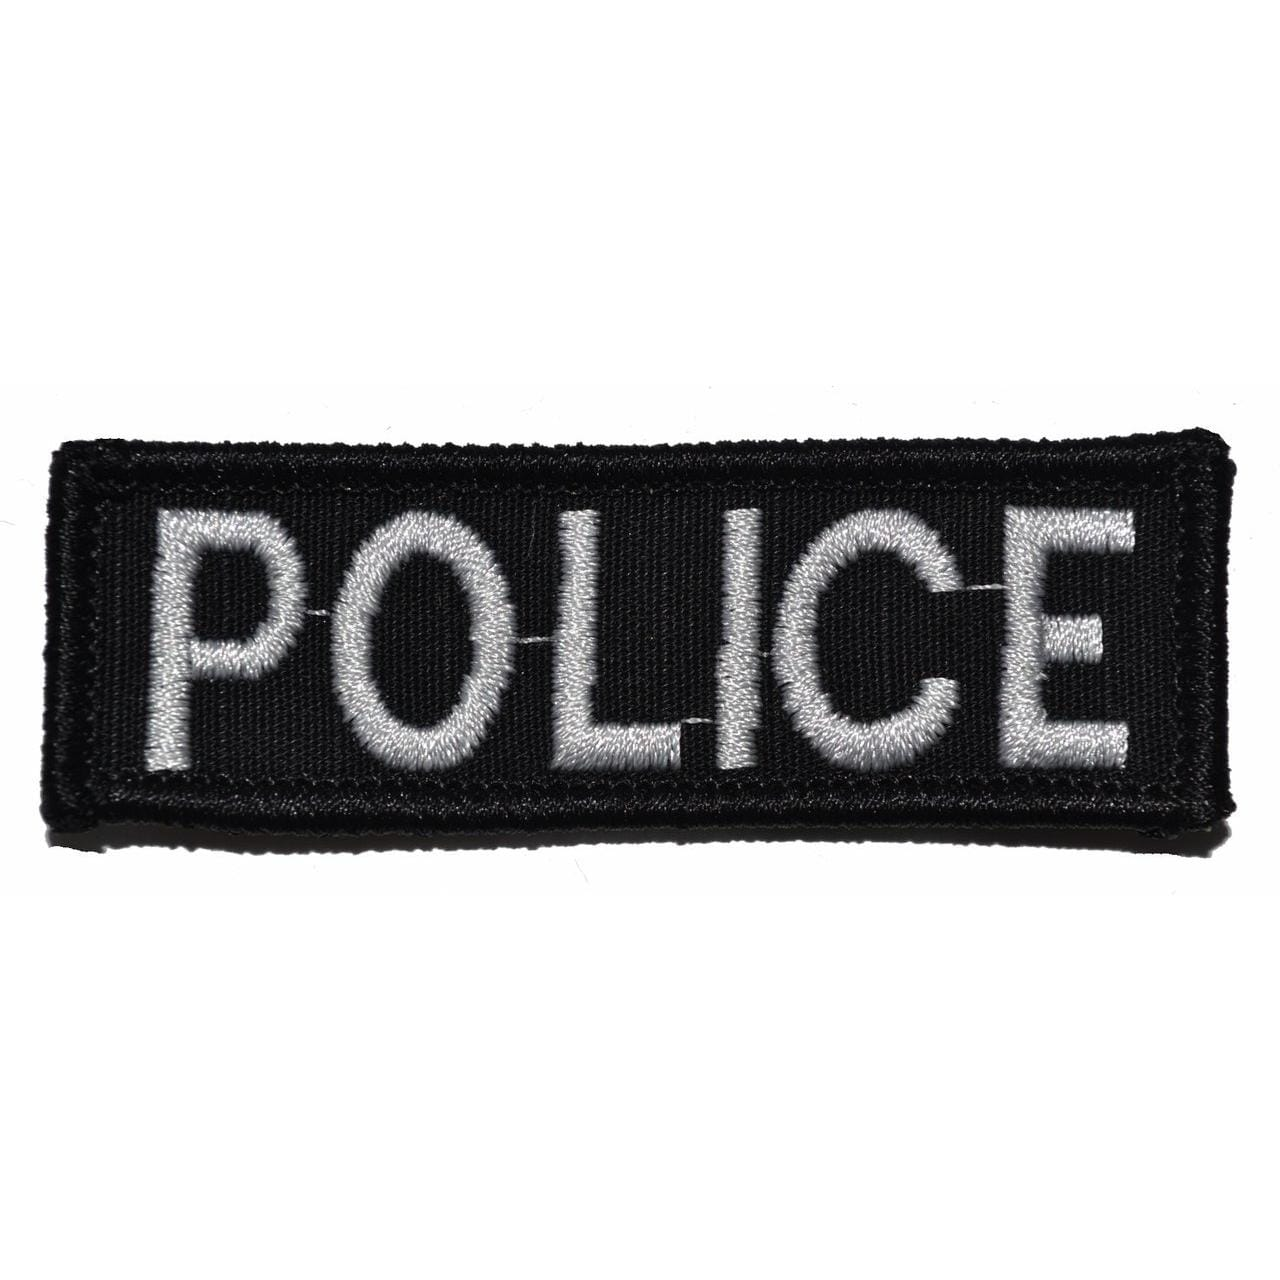 Police Name Tape - 1x3 Patch